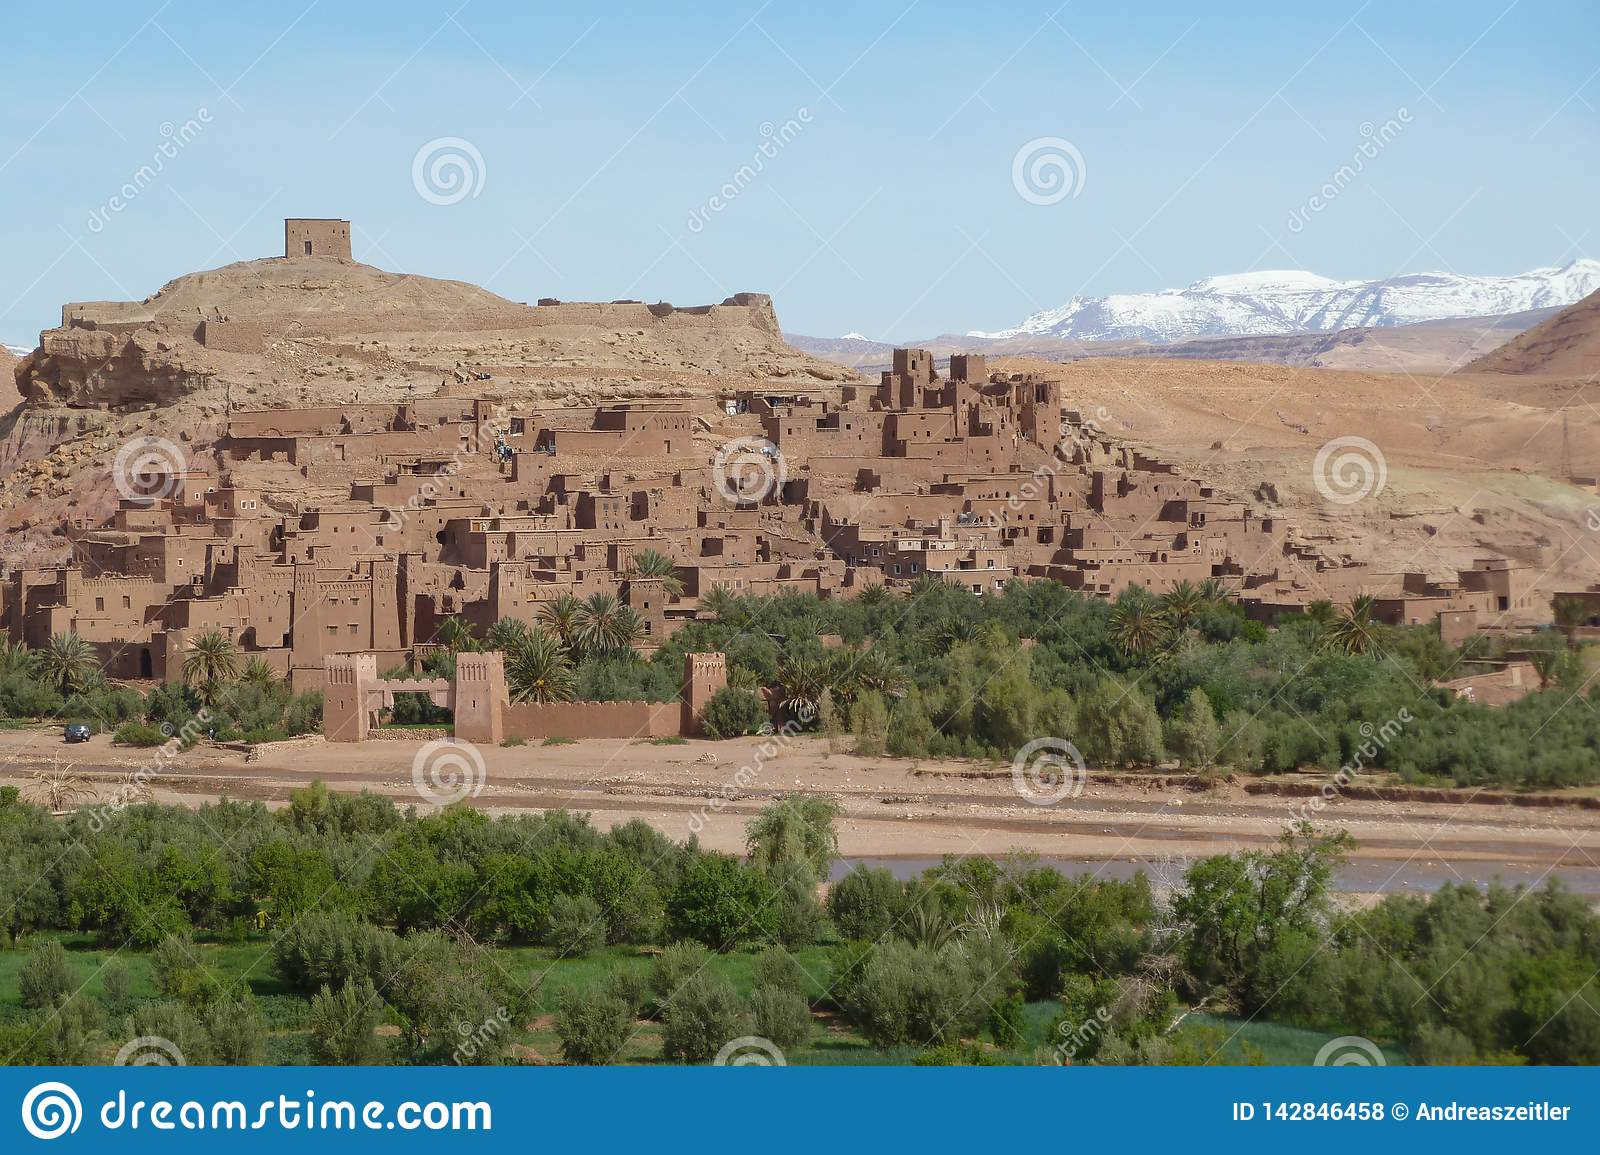 Fortified city of Ait Benhaddou along the former caravan route between the Sahara and Marrakech in Morocco with snow covered Atlas